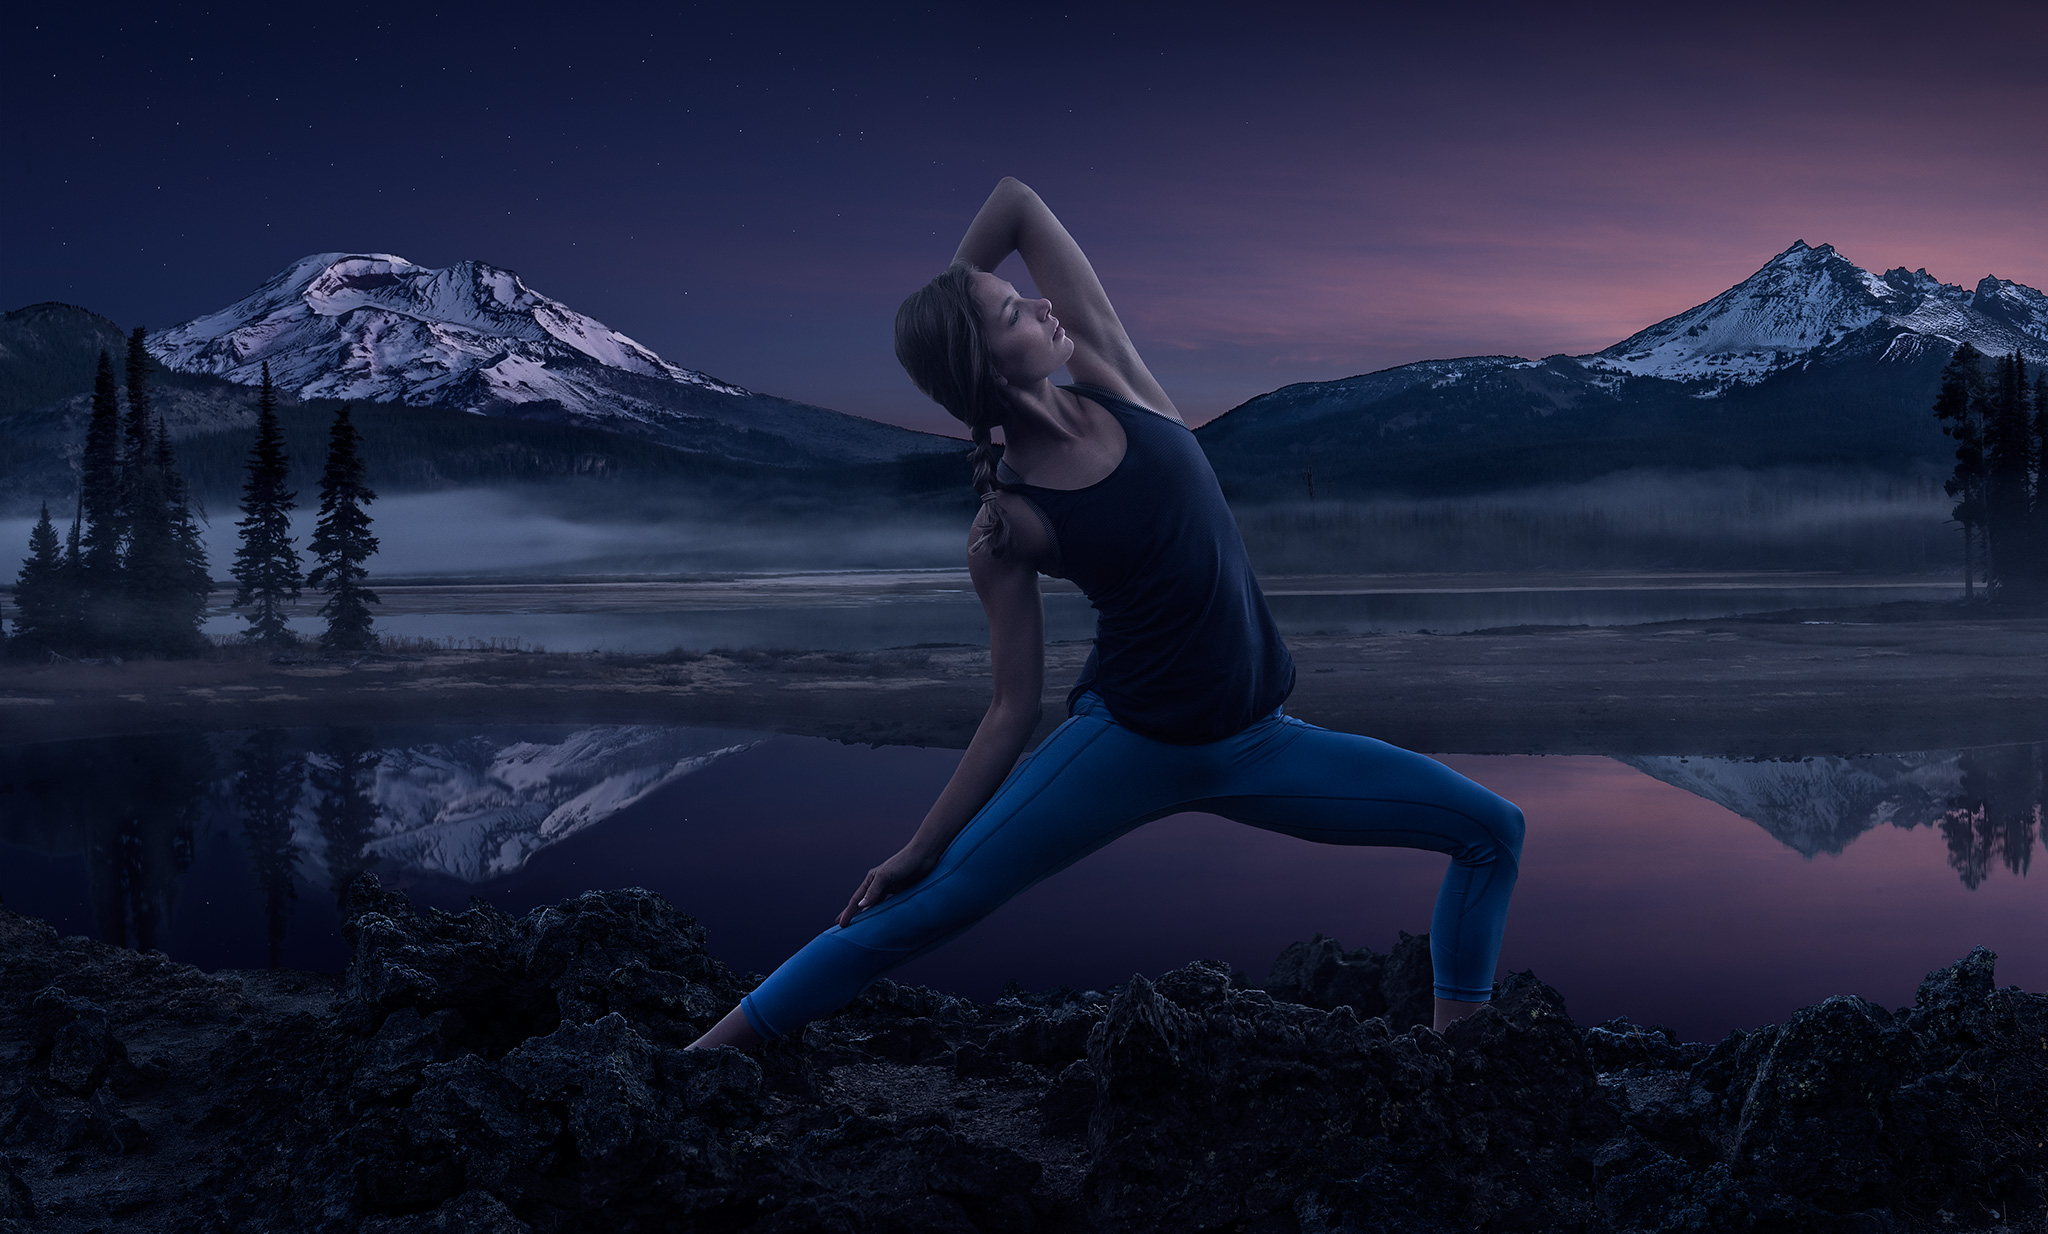 Meditative Yogi Awaits Sunrise | Zach Ancell Photography